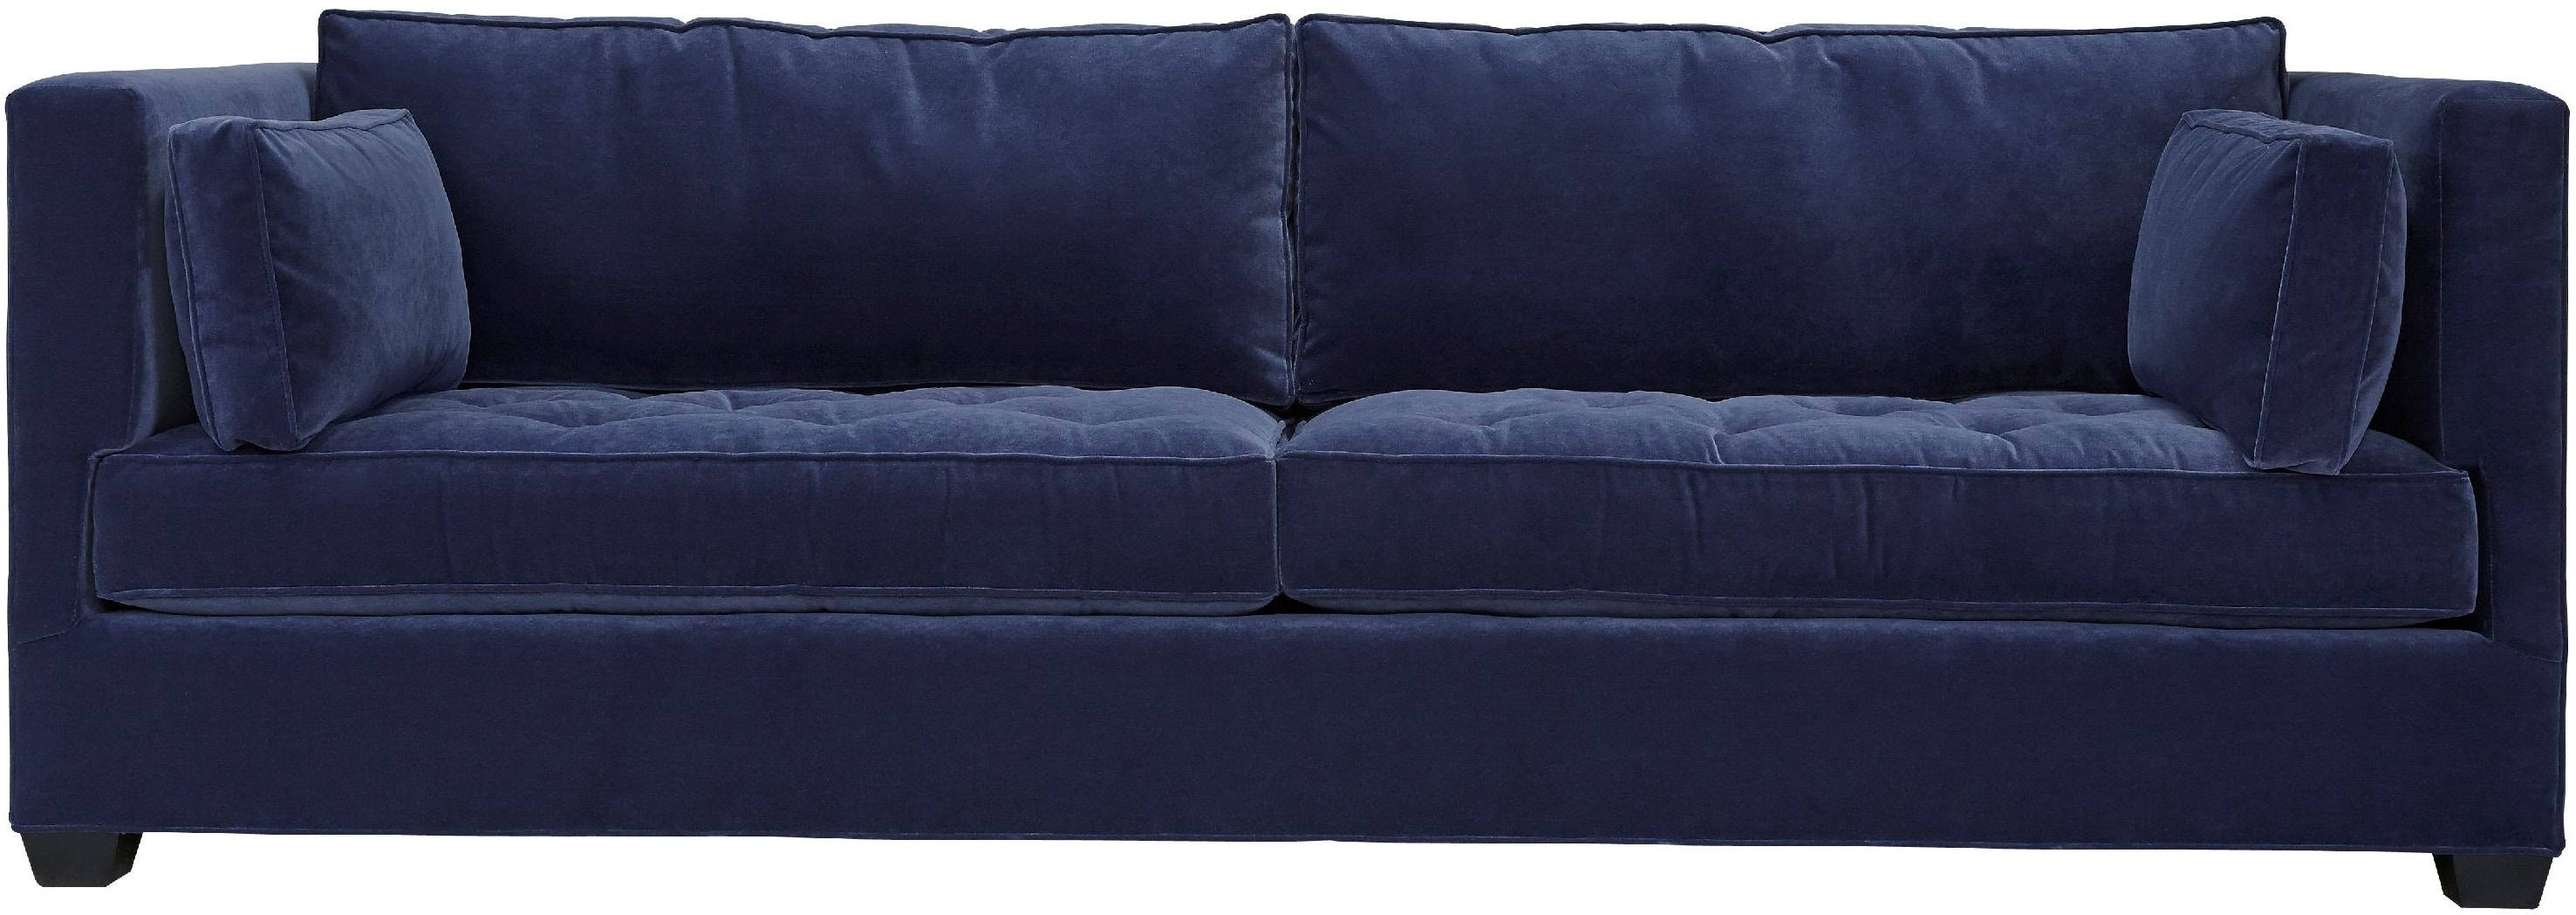 Southern Furniture Living Room Slate 8ft Sofa Whitley